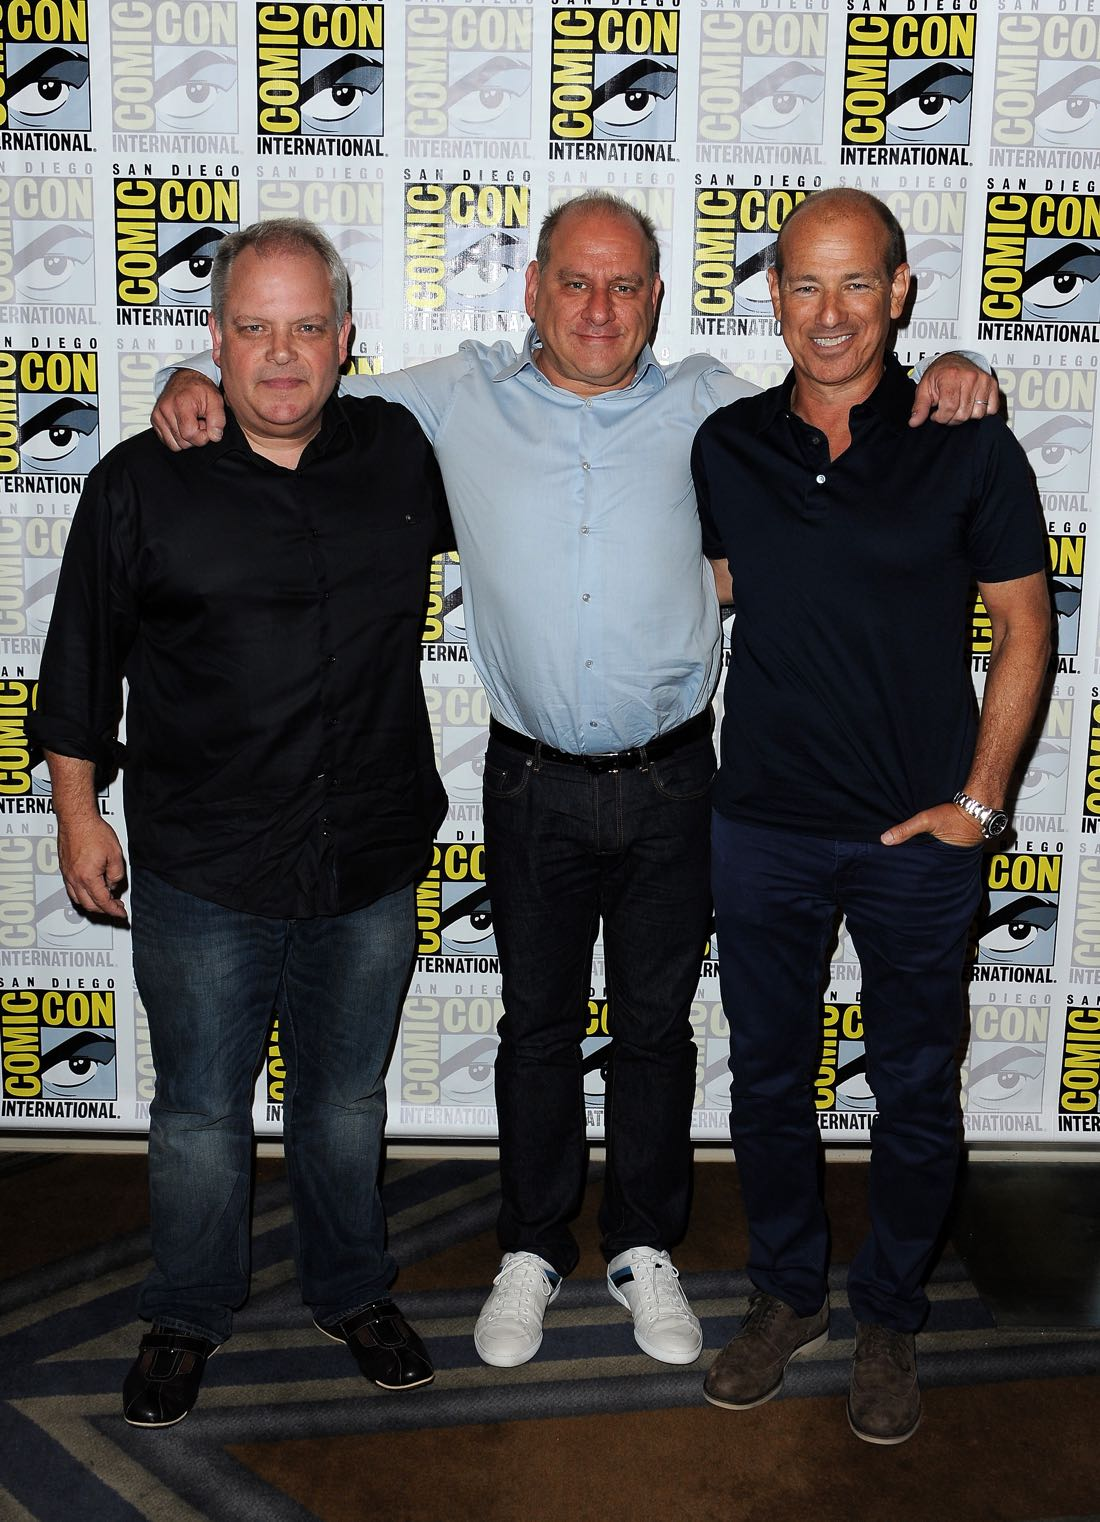 FOX FANFARE AT SAN DIEGO COMIC-CON © 2016: L-R: 24:LEGACY executive producers Manny Coto, Evan Katz and Howard Gordon during the 24:LEGACY press room on Sunday, July 24 at the FOX FANFARE AT SAN DIEGO COMIC-CON © 2016. CR: Scott Kirkland/FOX © 2016 FOX BROADCASTING